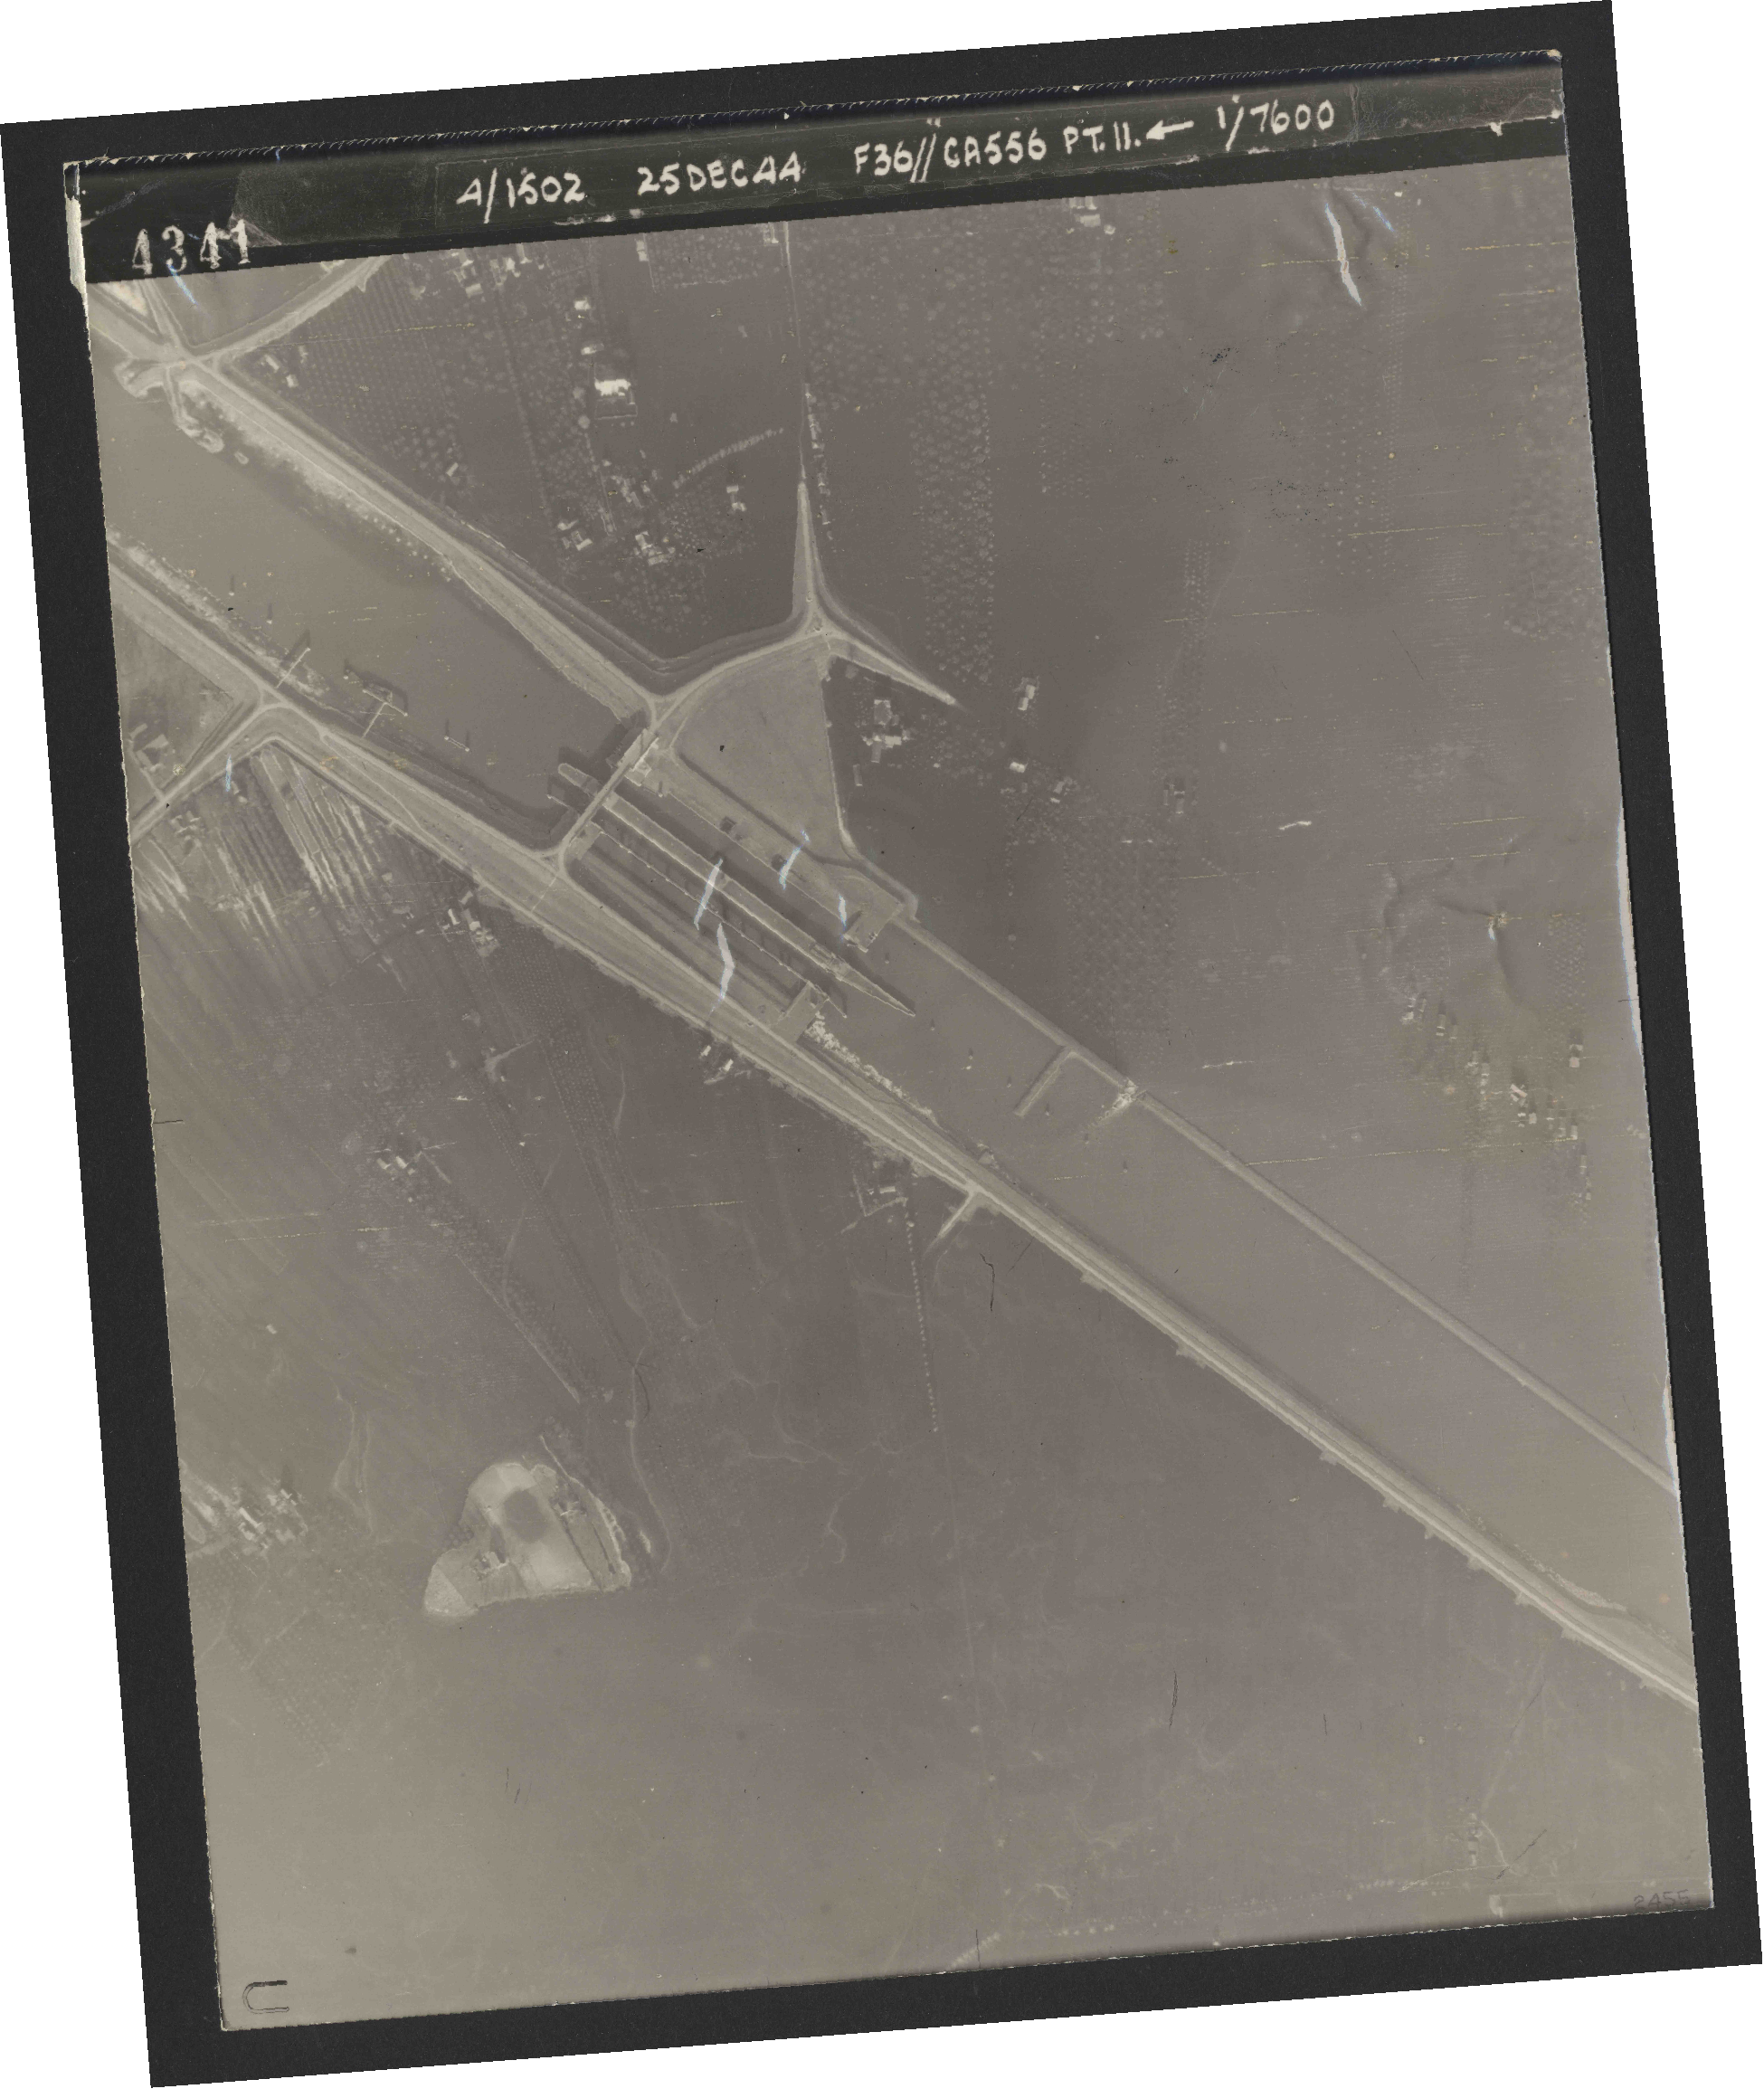 Collection RAF aerial photos 1940-1945 - flight 306, run 11, photo 4341